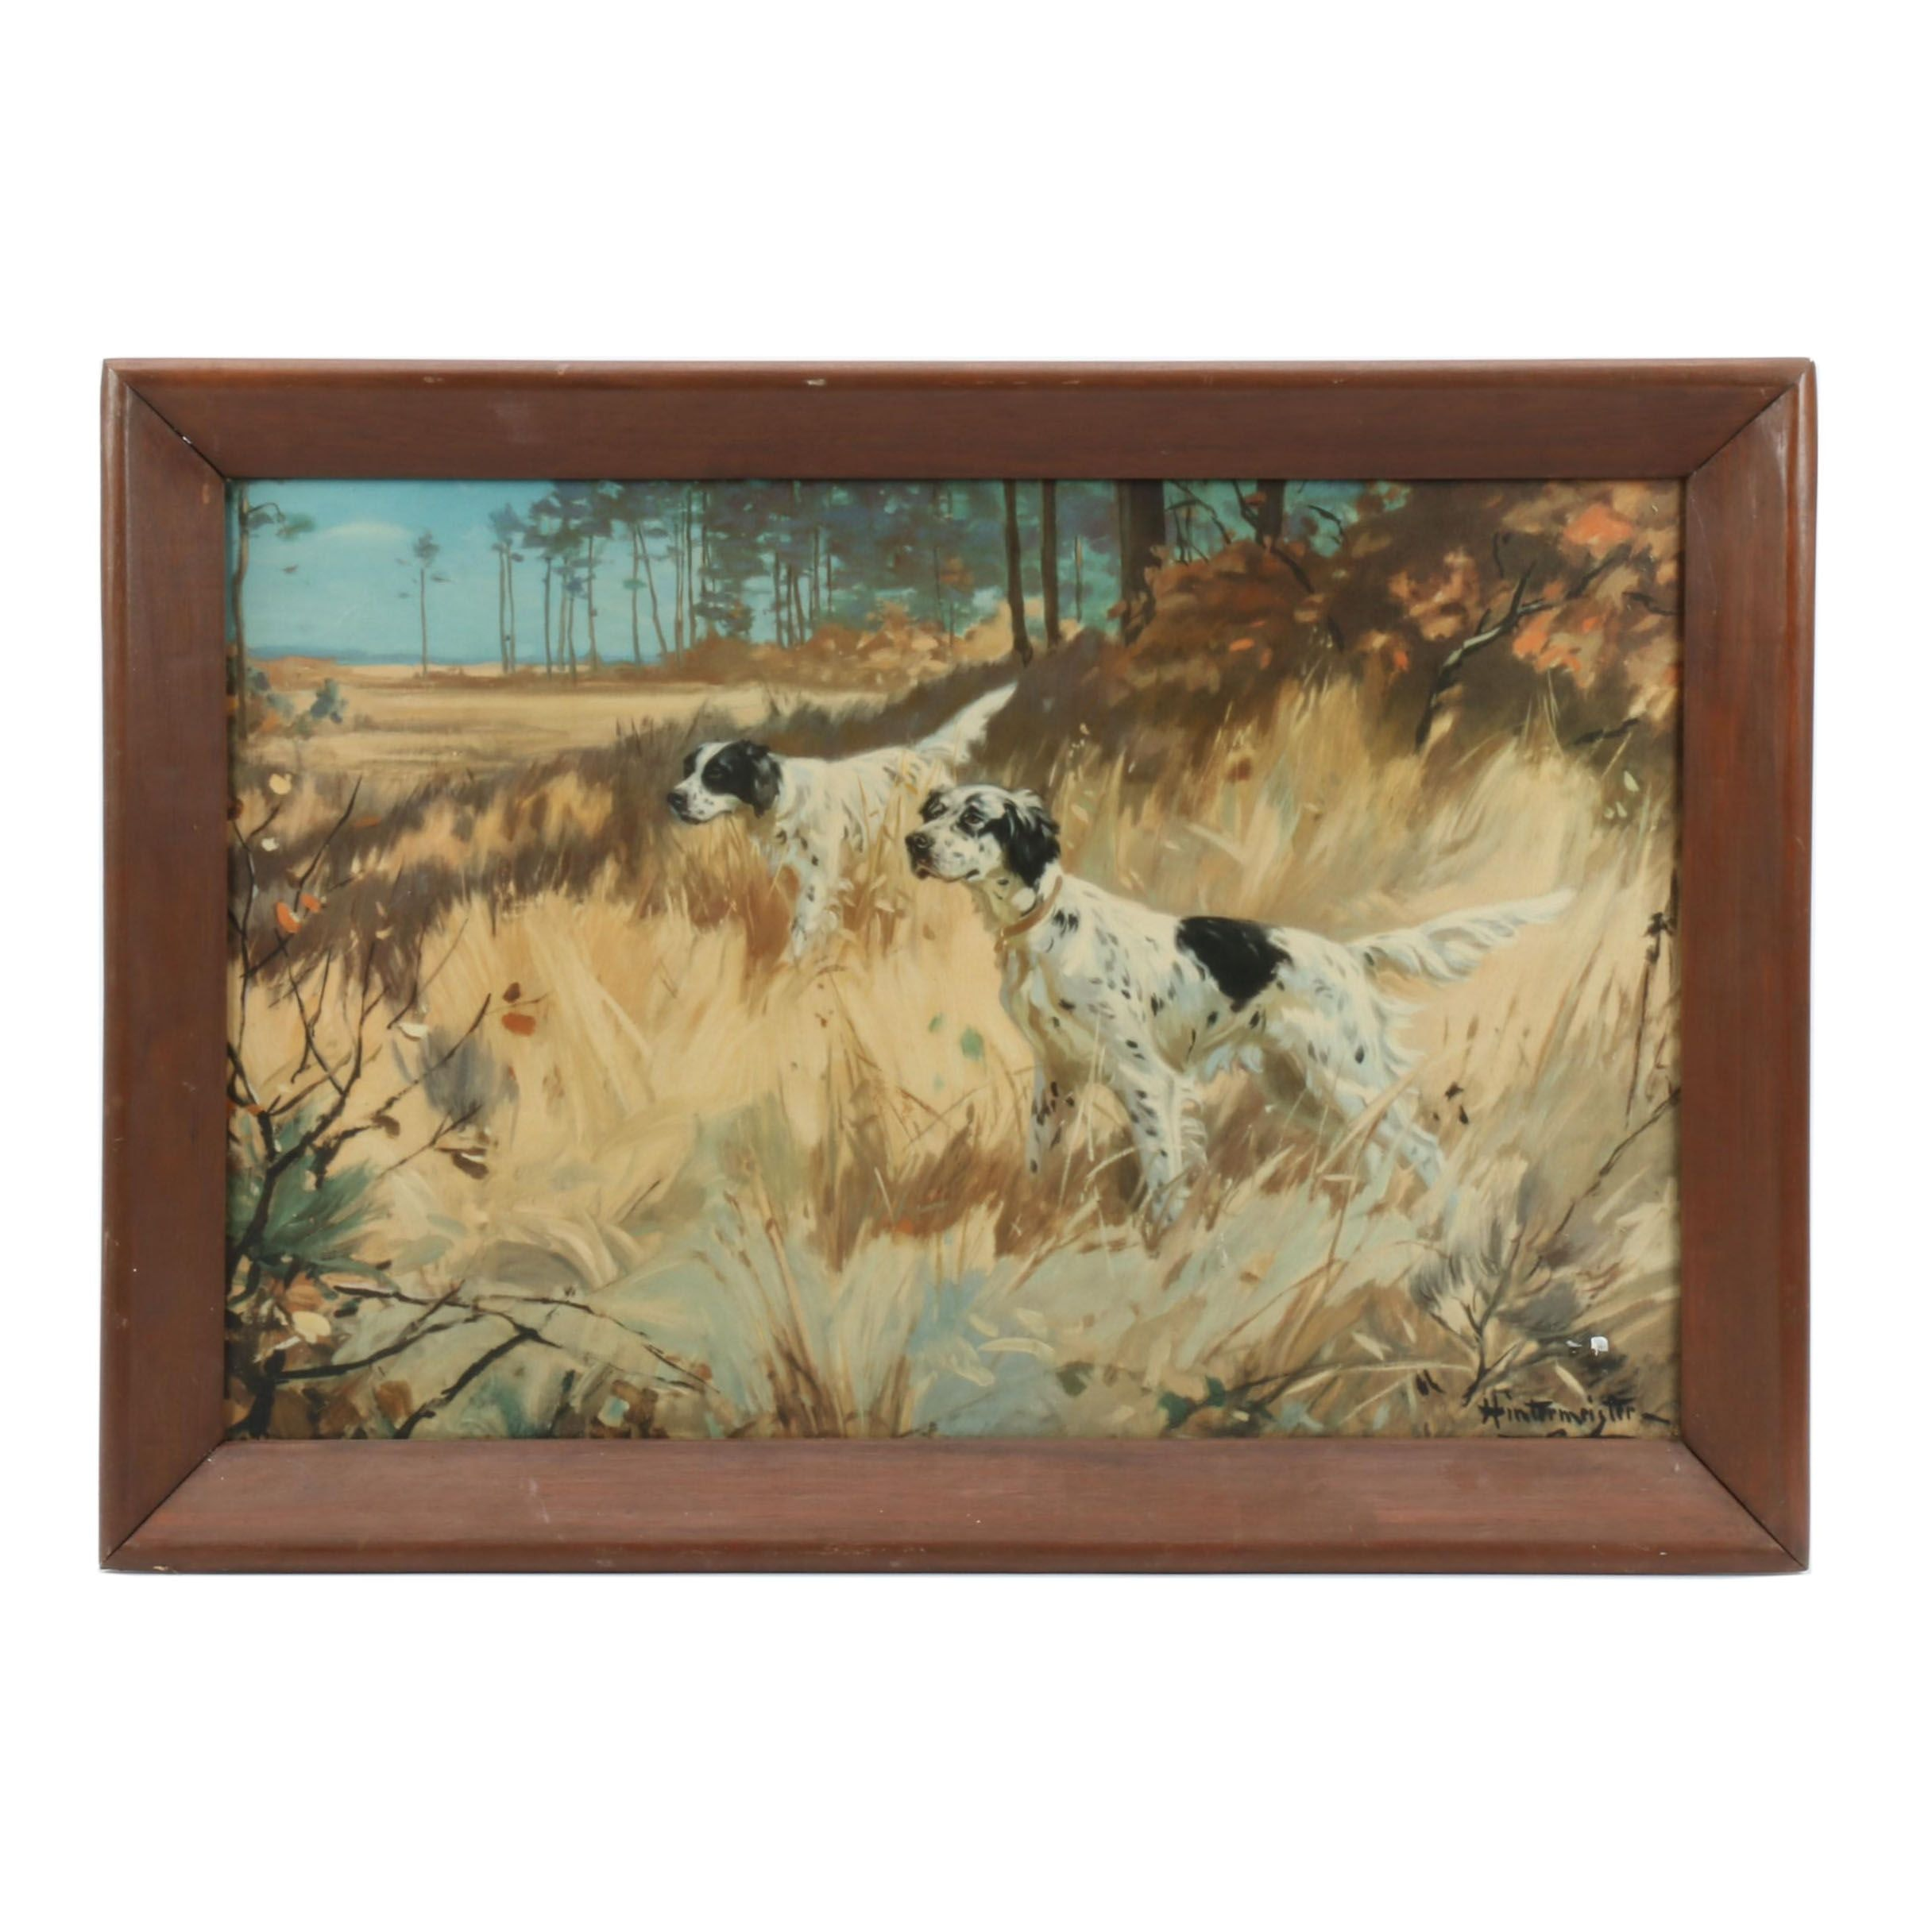 Henry Hintermeister Offset Lithograph featuring English Setter Hunting Dogs